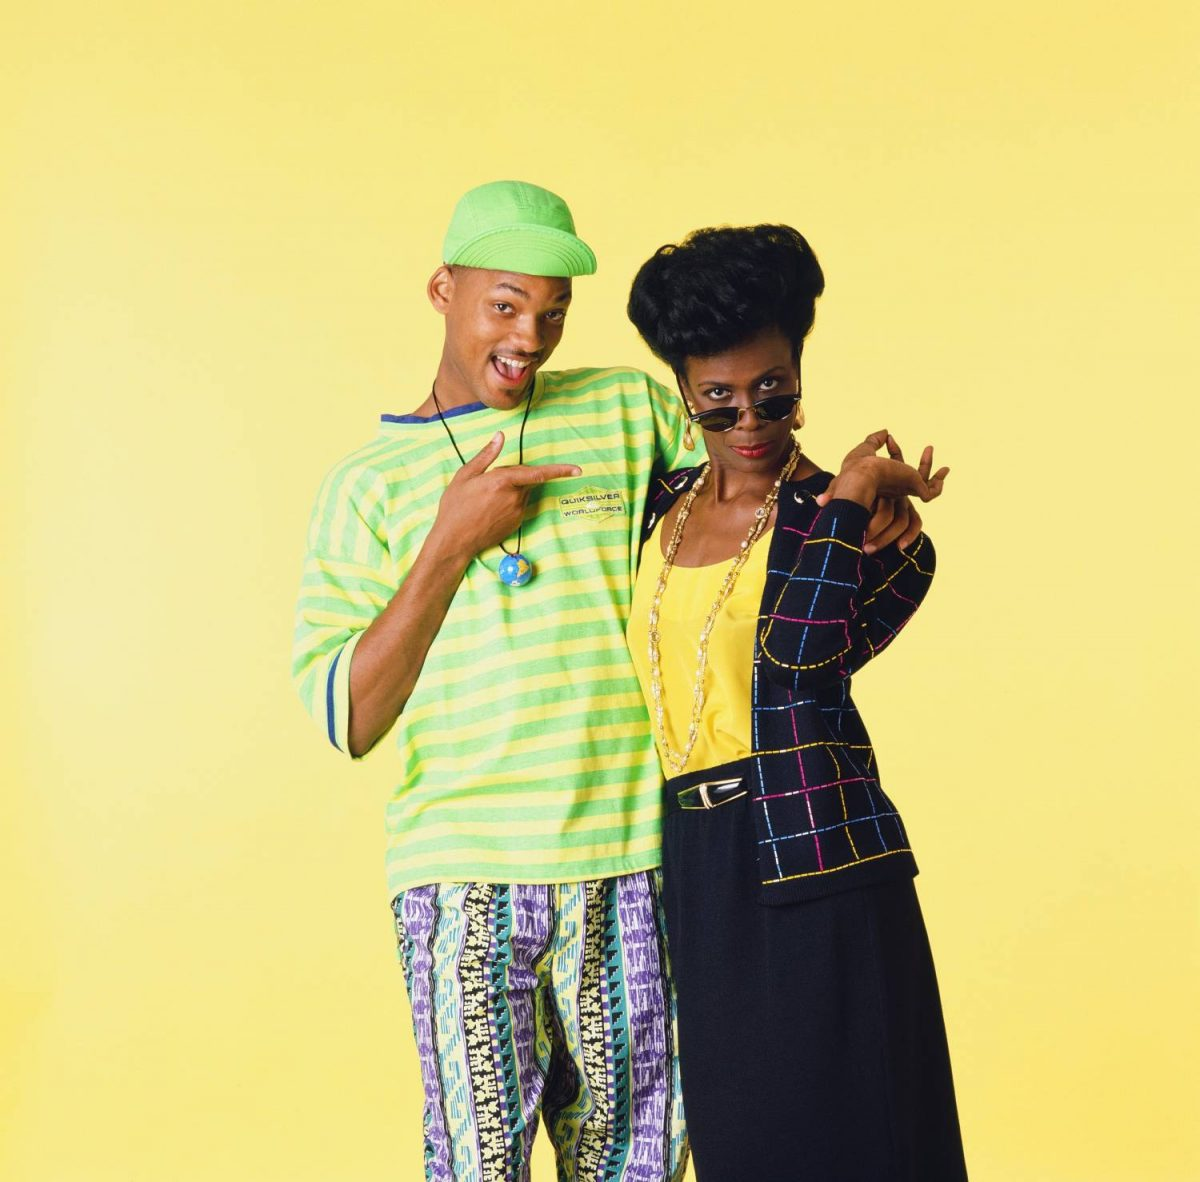 Will Smith as William 'Will' Smith, Janet Hubert as Vivian Banks